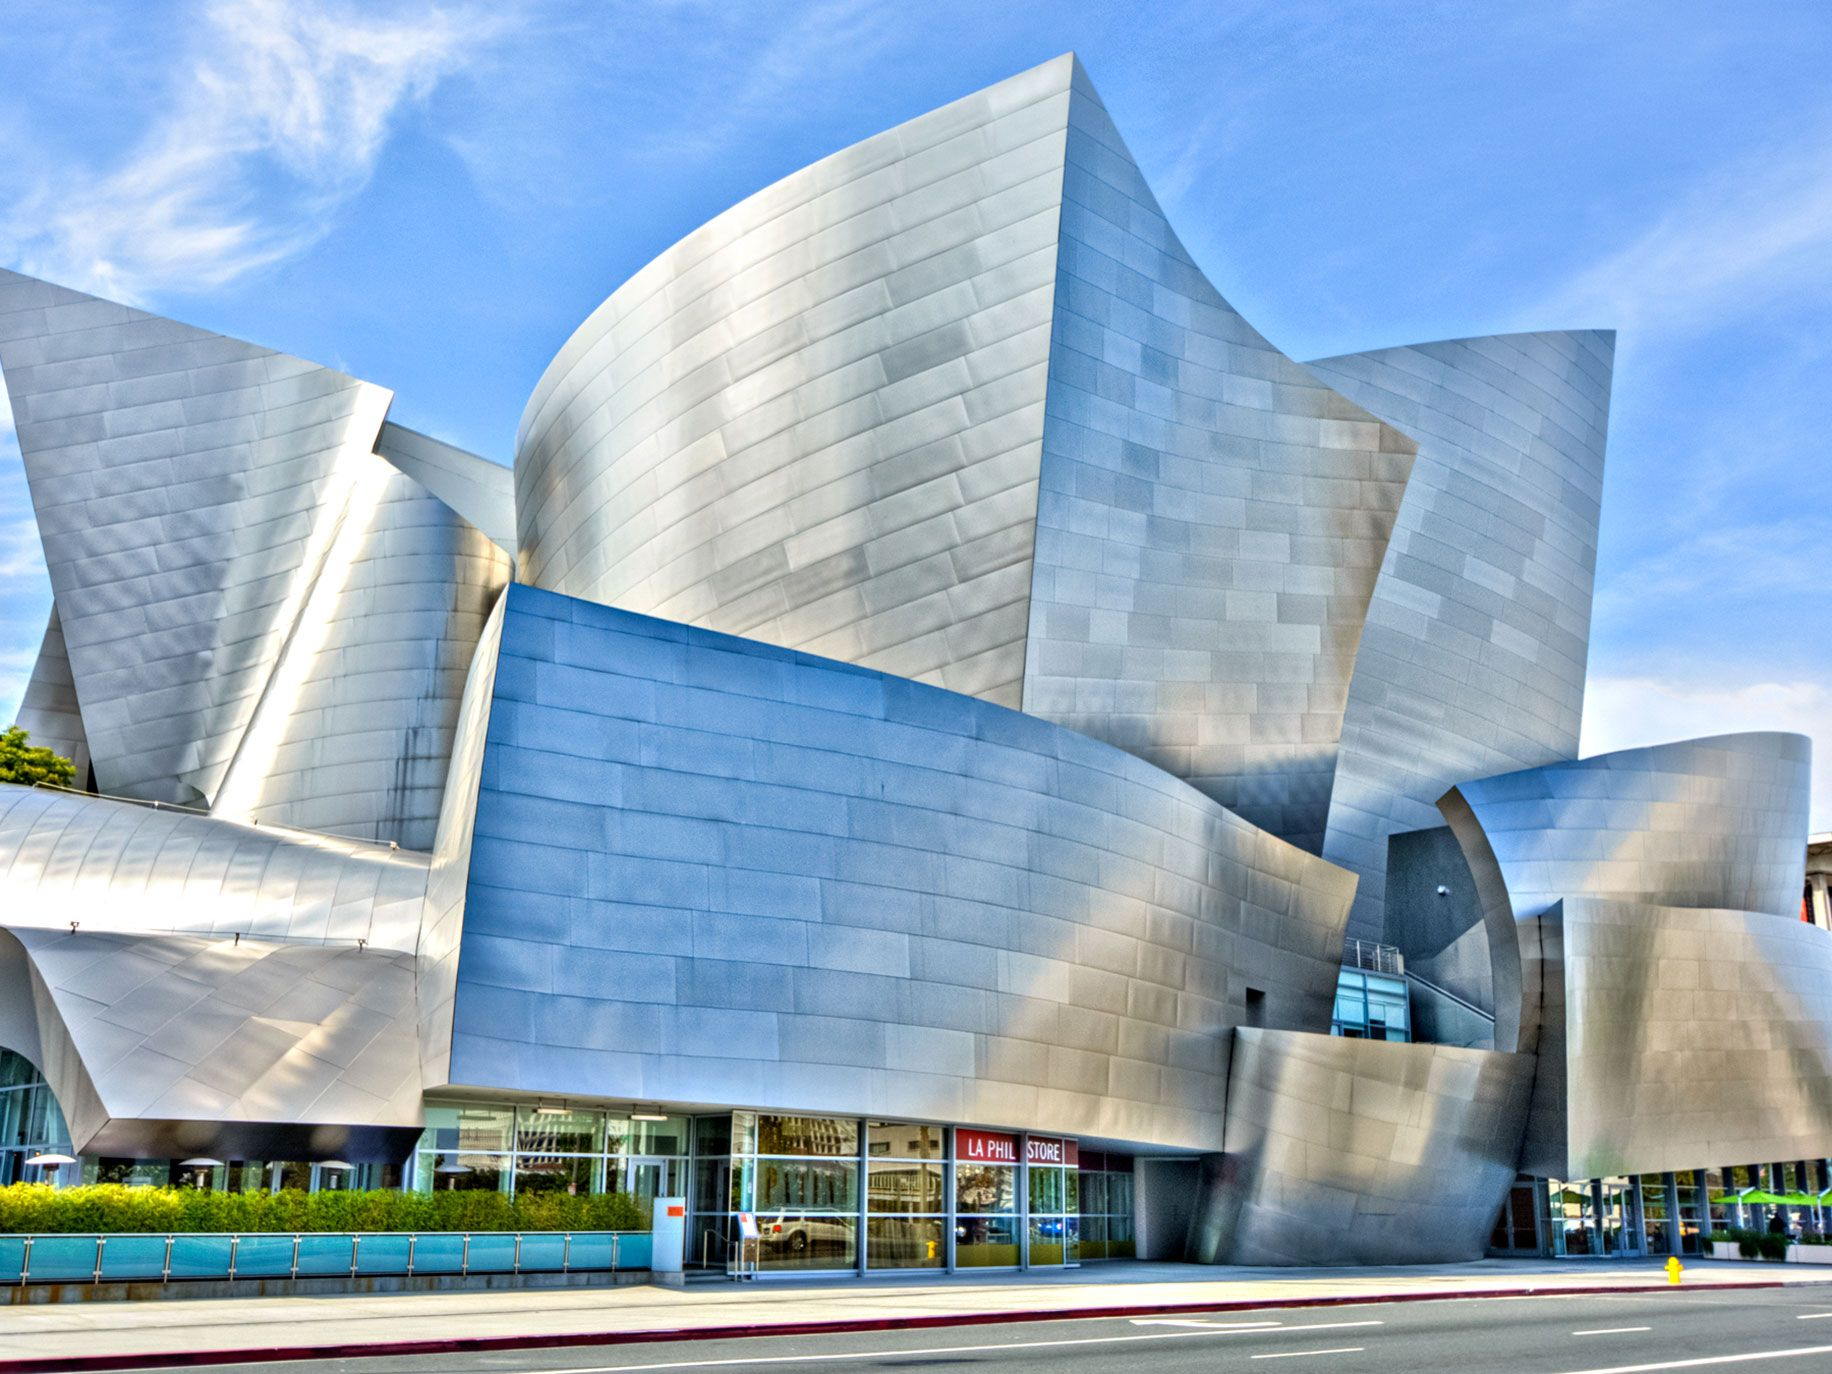 The swooping stainless steel forms of the Walt Disney Concert Hall in downtown Los Angeles.